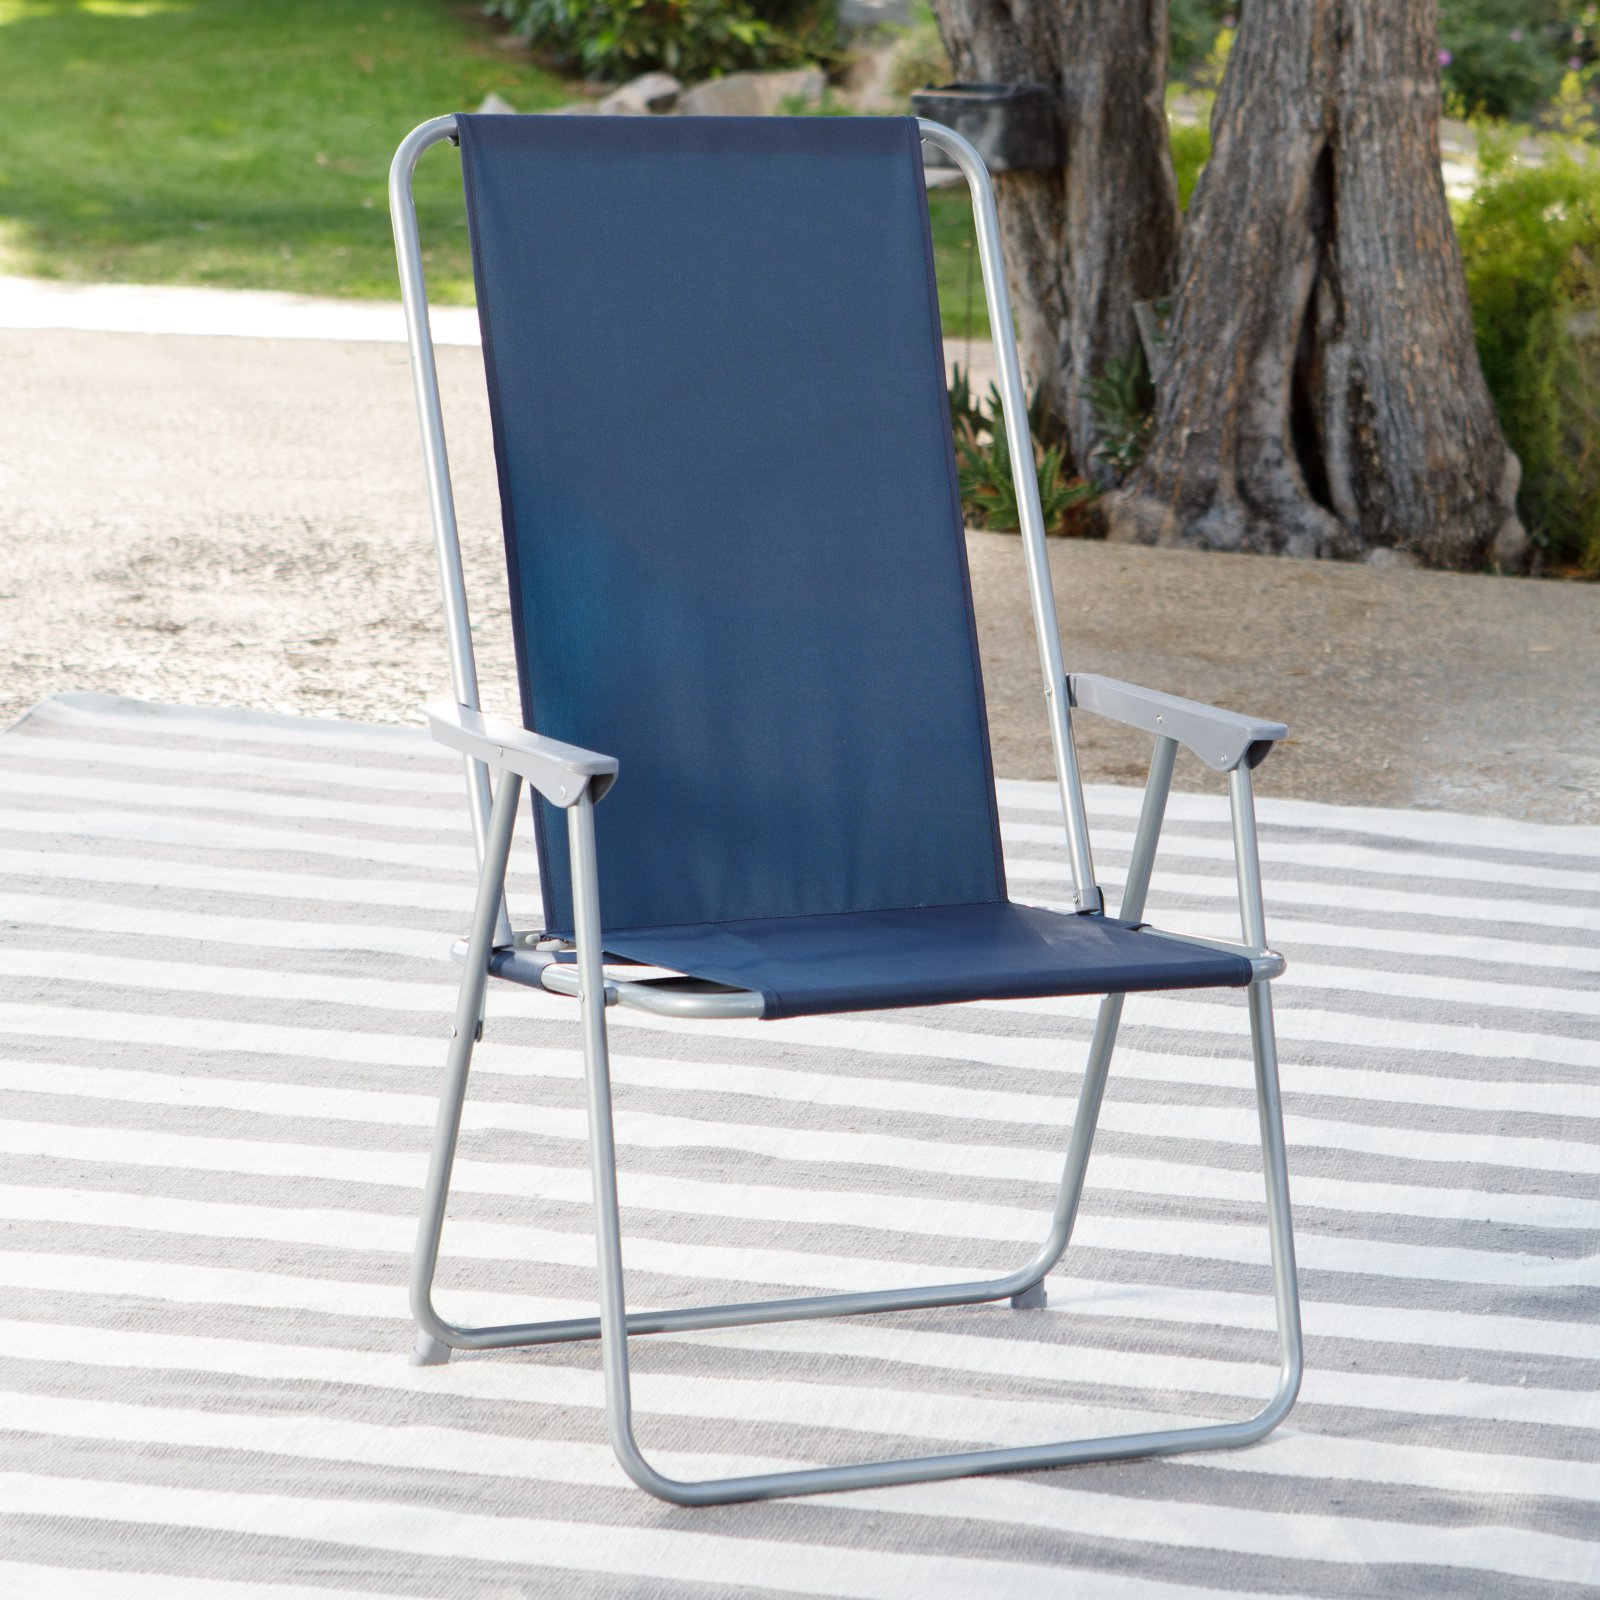 folding lawn chairs ontario steel chair tent house beach walmart com product image coral coast oxford